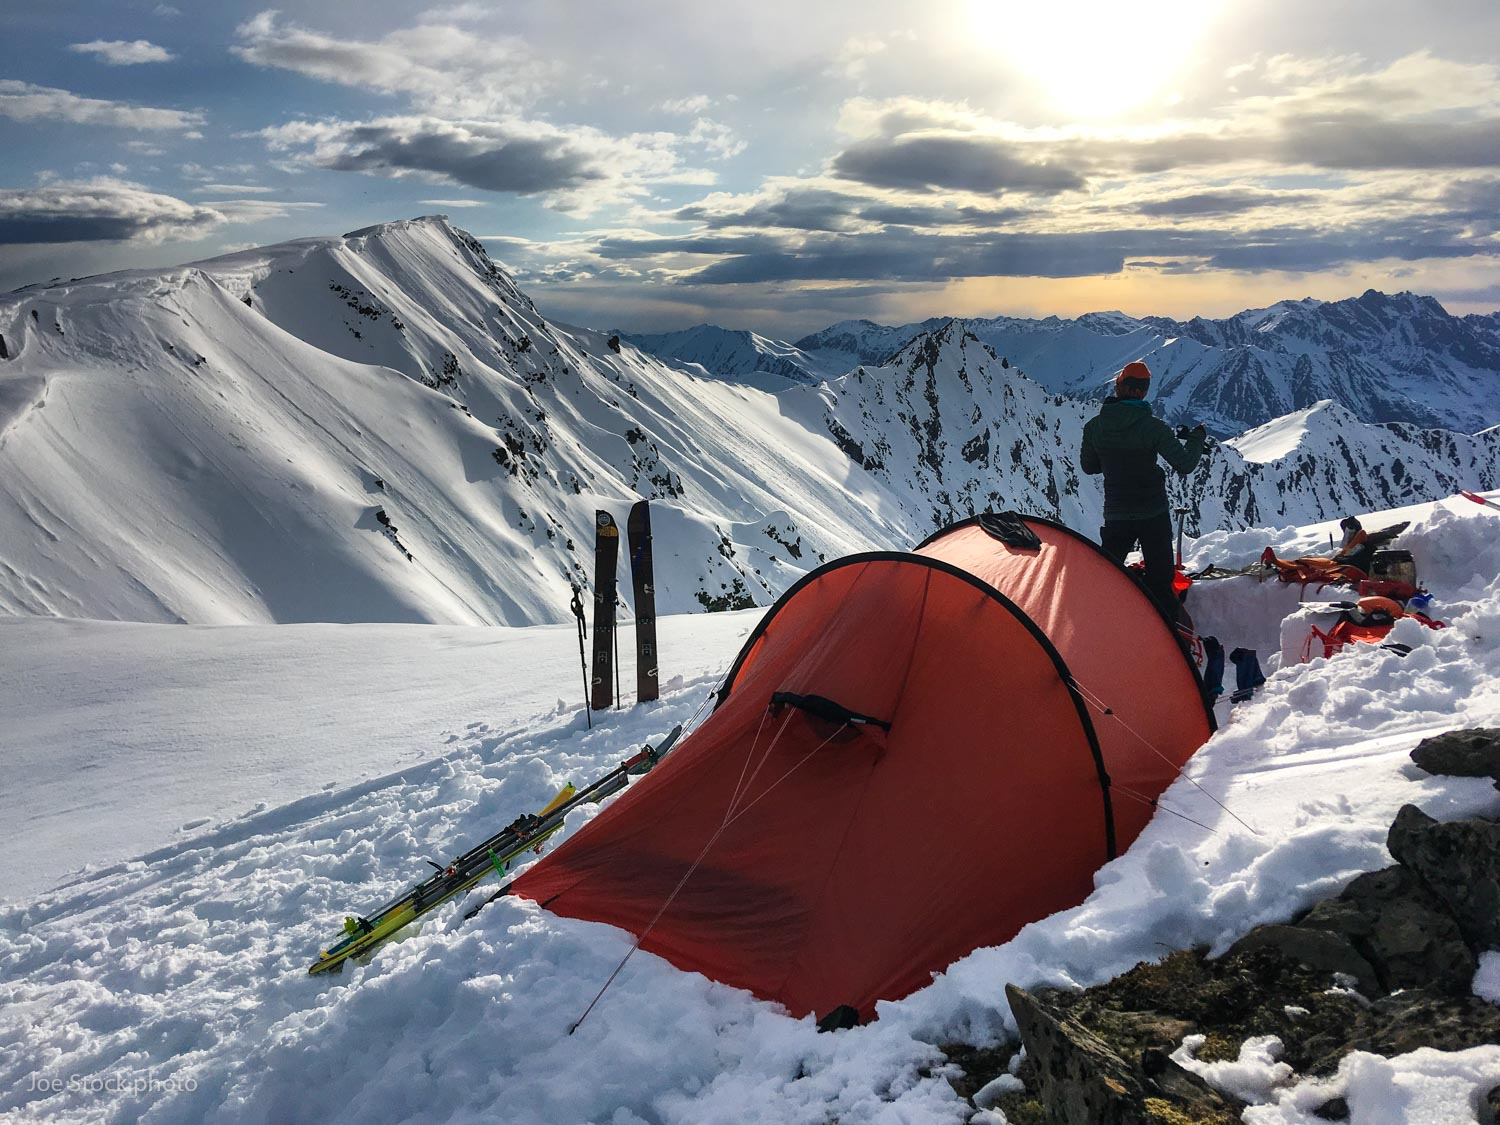 Ridge camping in the Talkeetna Mountains.